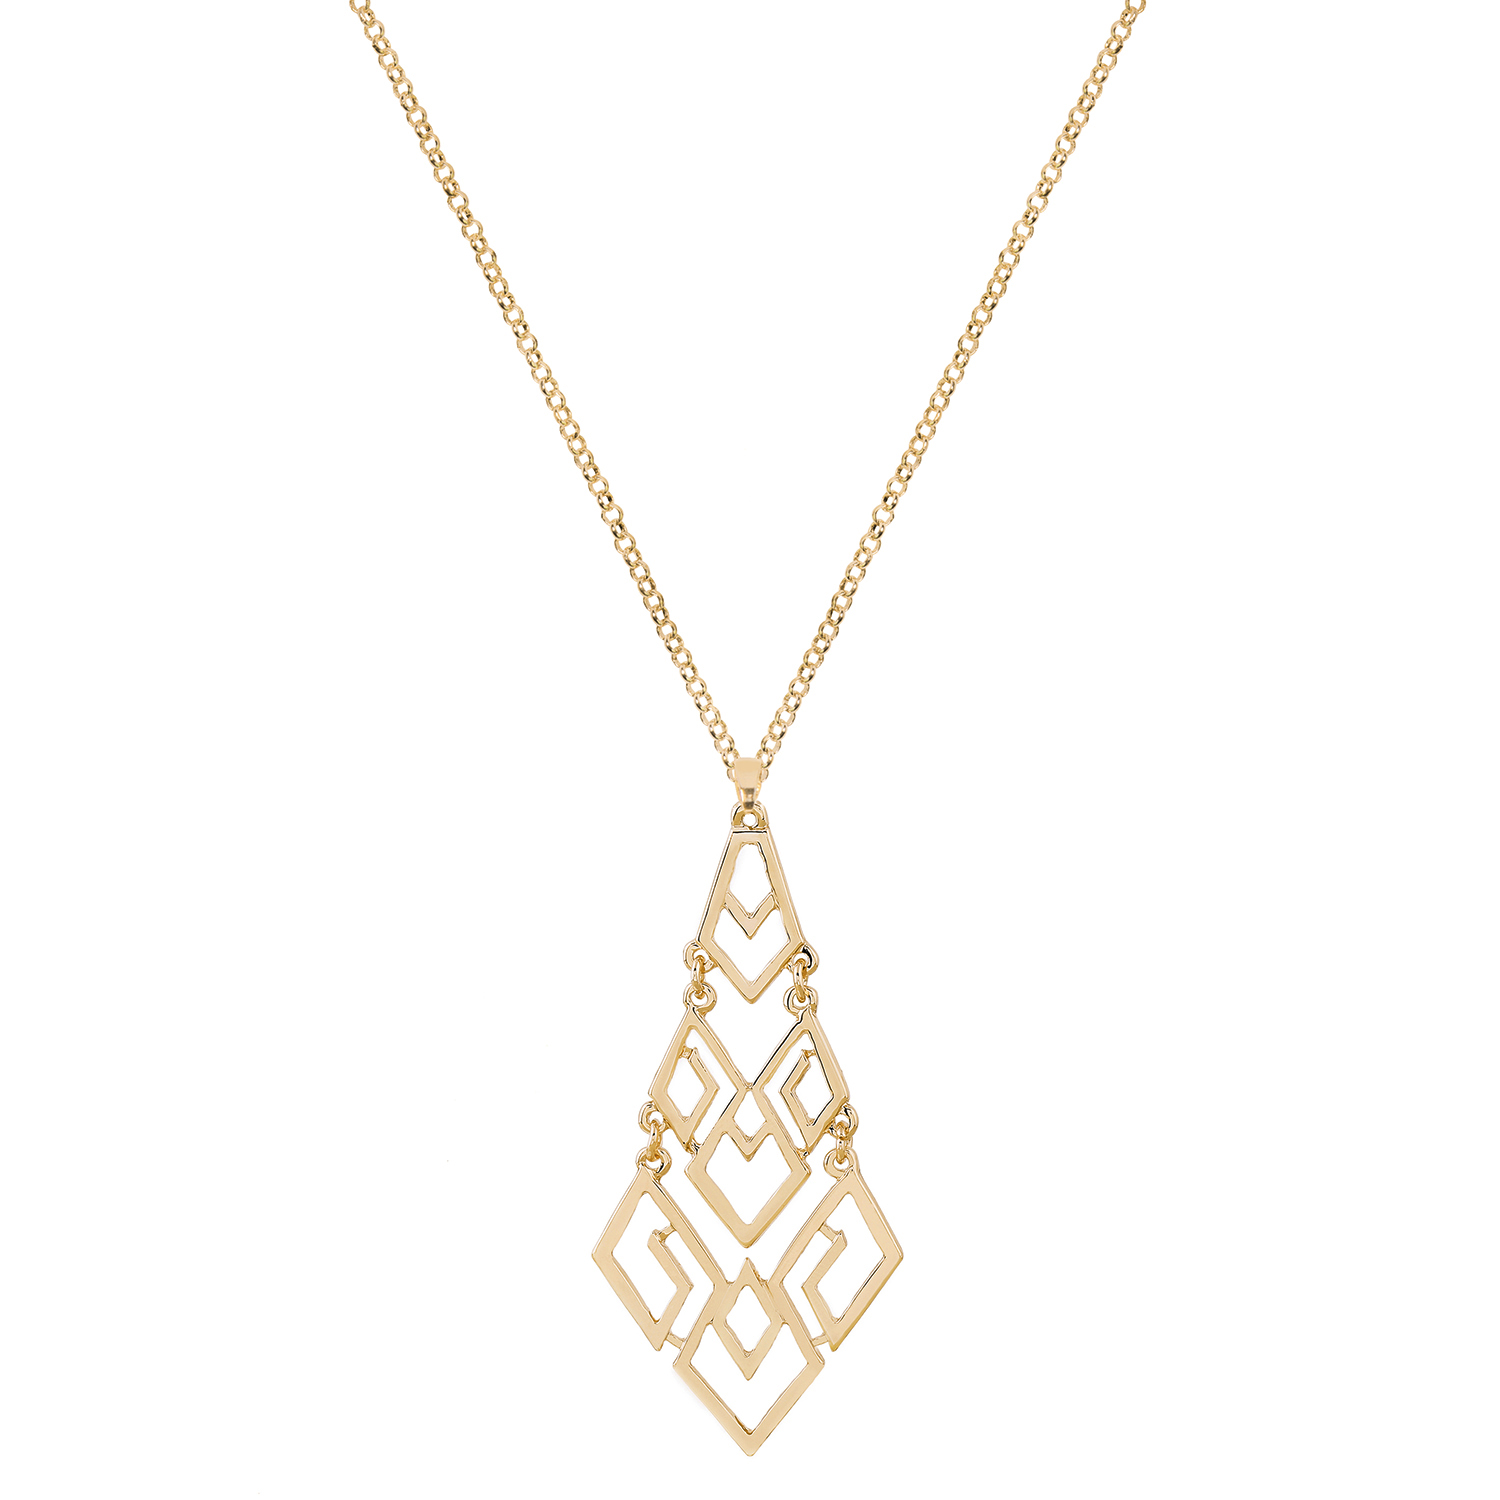 Awesome simple necklaces for women jewellrys website pare prices on chandelier necklaces line shopping buy low arubaitofo Choice Image